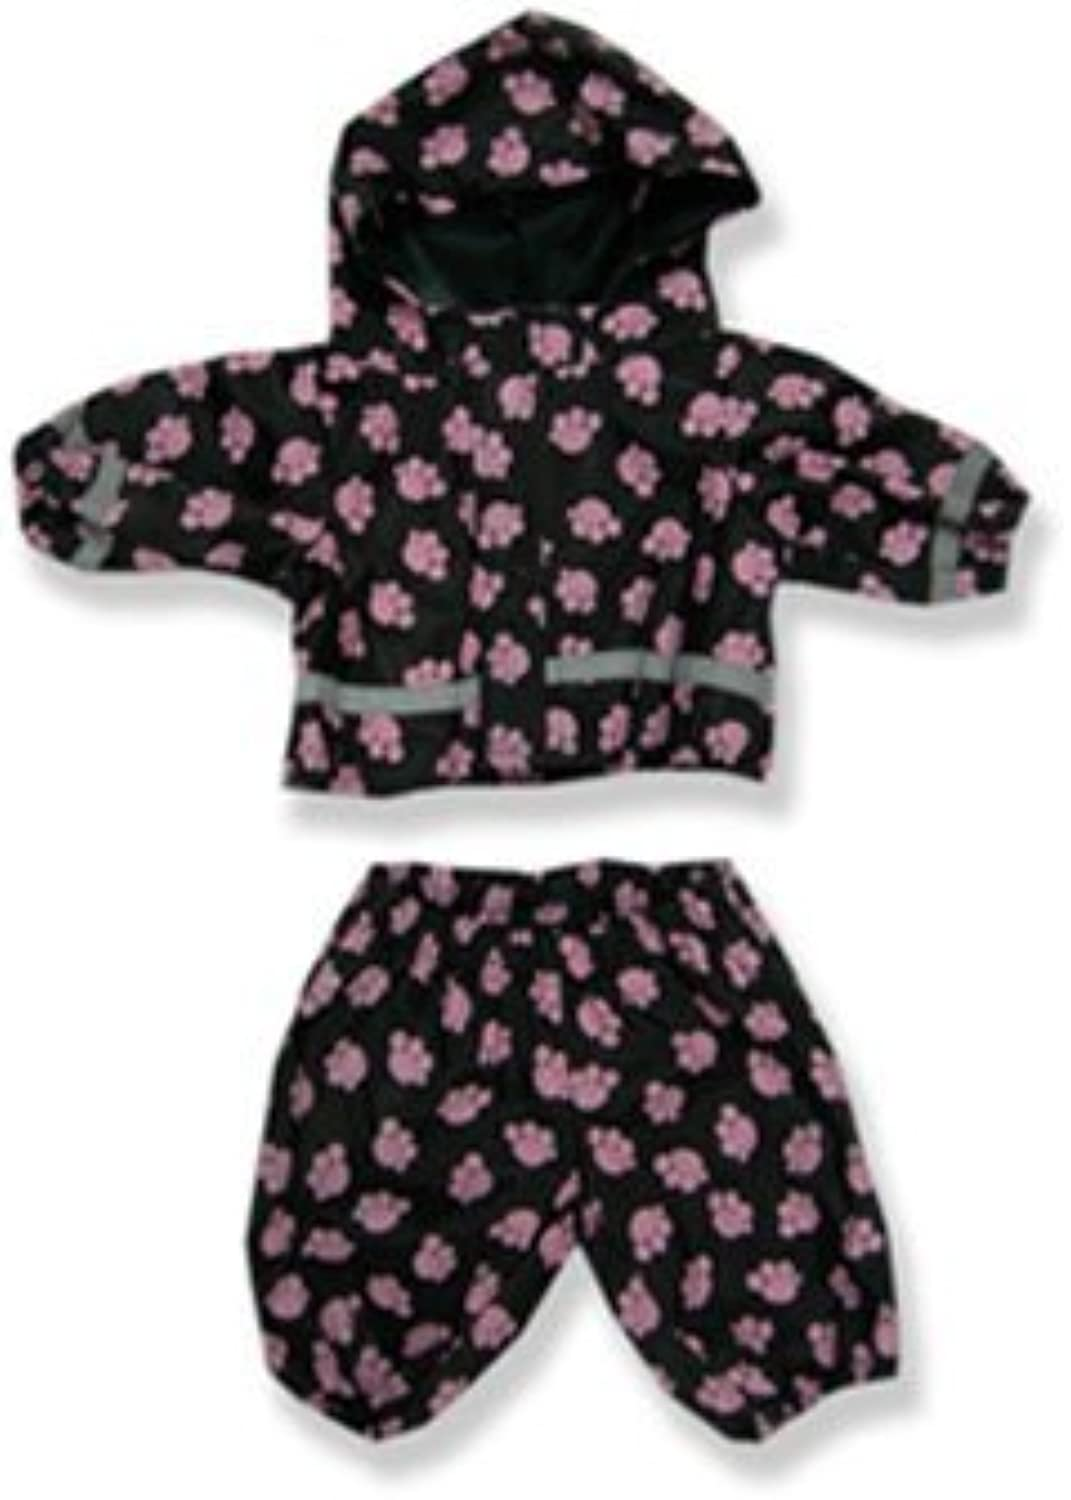 Pink Paws Rain Suit  9113 Fits 15  16 bears, includes Build a Bear, The Bear Mill, and Stuff your own Animals. by The Bear Mill